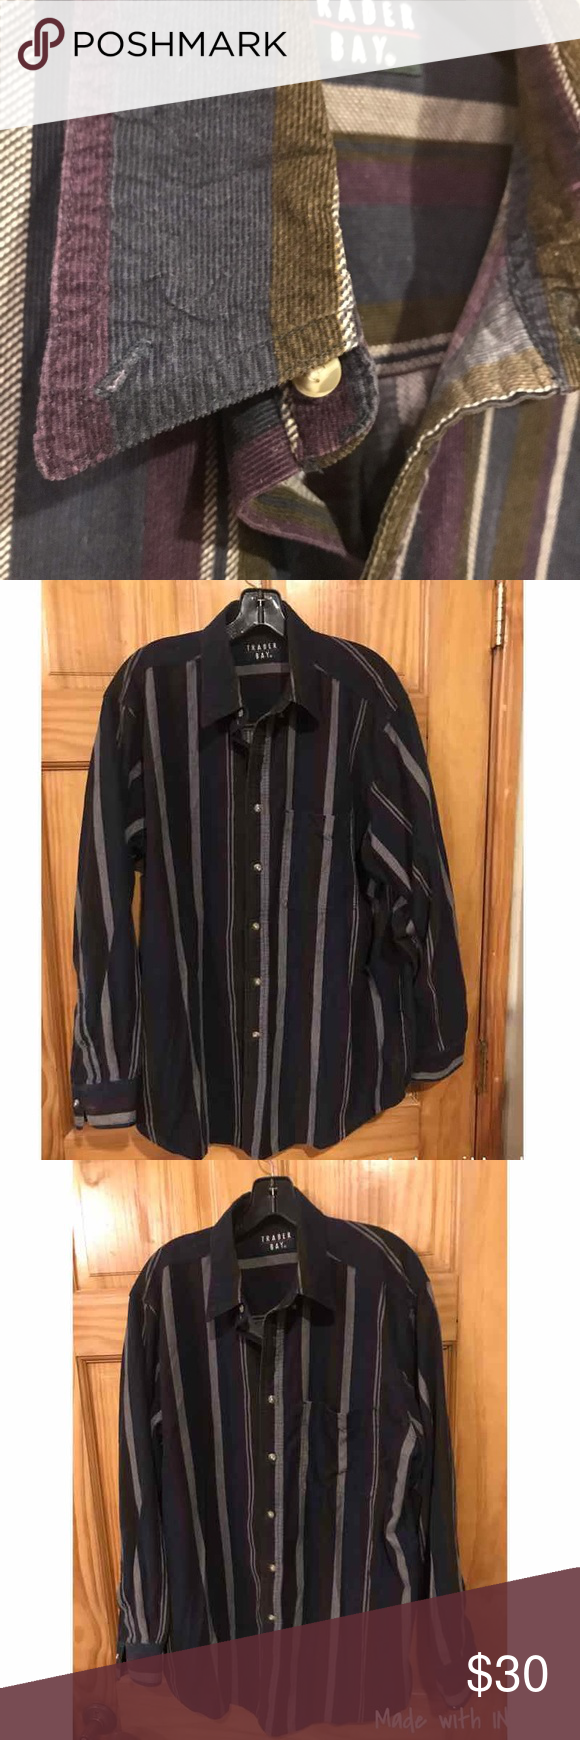 ef9e366d True Vintage 80's Button Up - Southwest Style Vintage 80s Trader corduroy  striped button up shirt - excellent condition! Retro stripes in navy, olive  green, ...